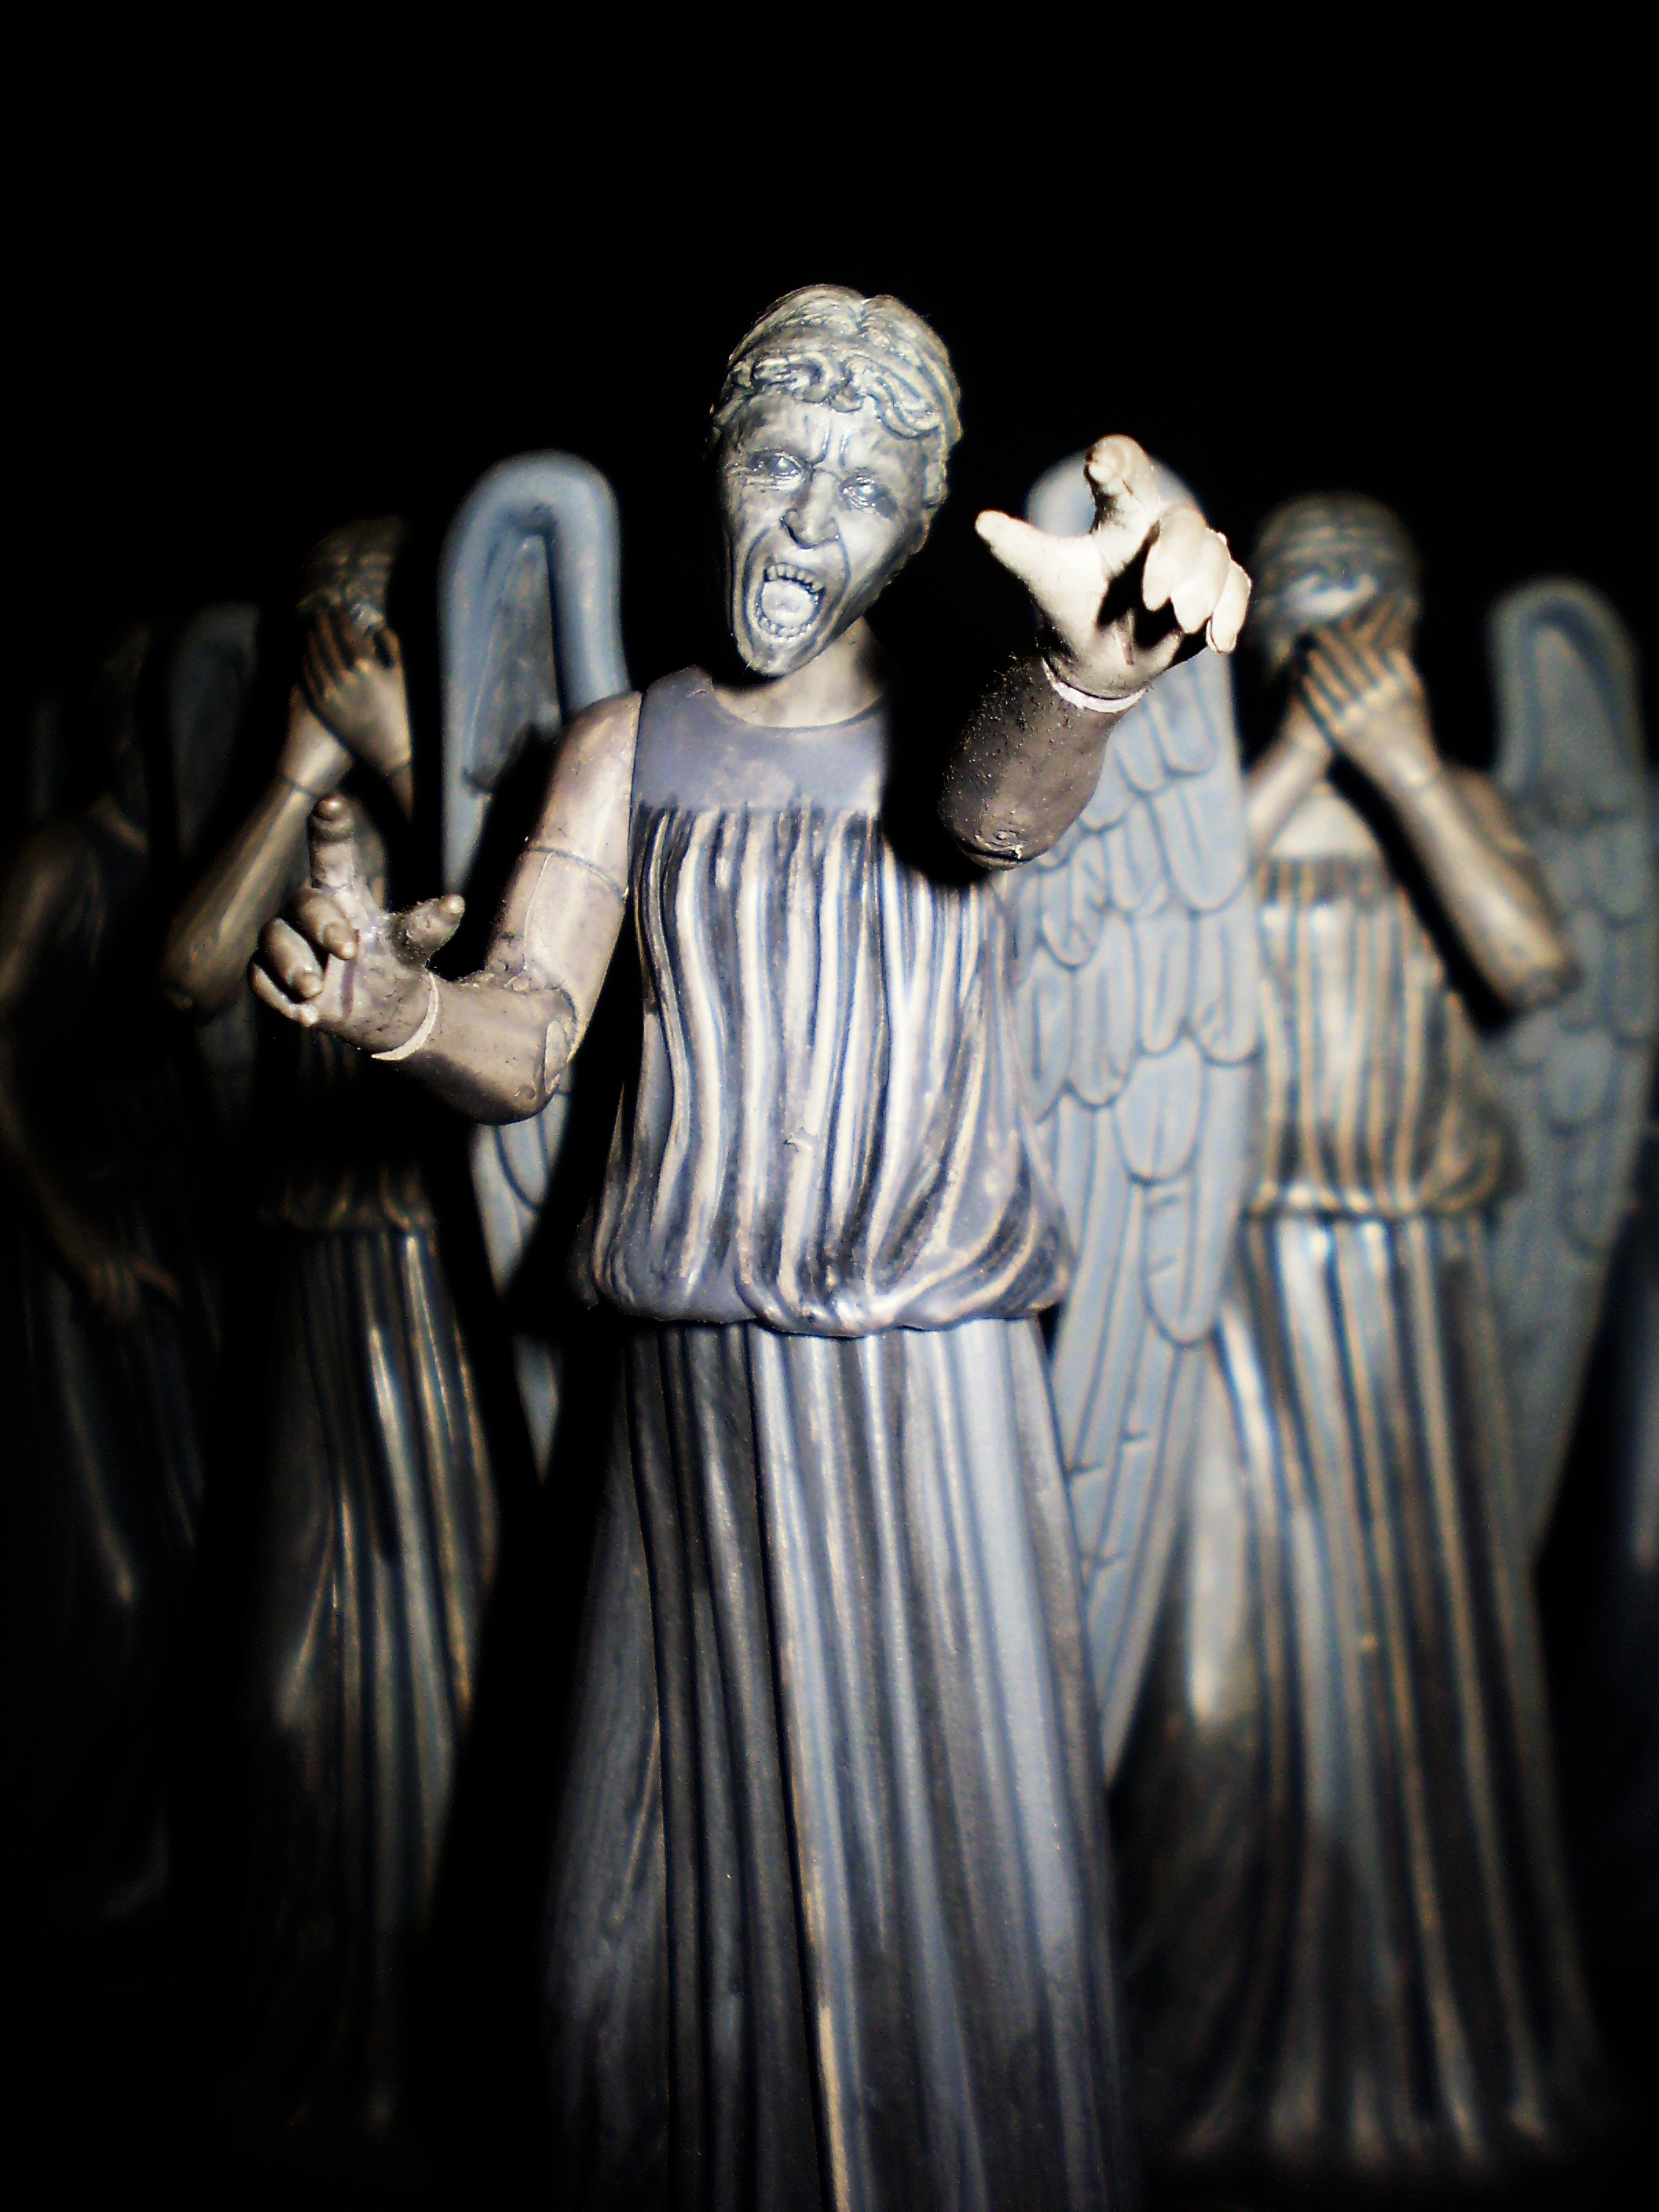 Weeping Angels. I did not blink while repinning this.